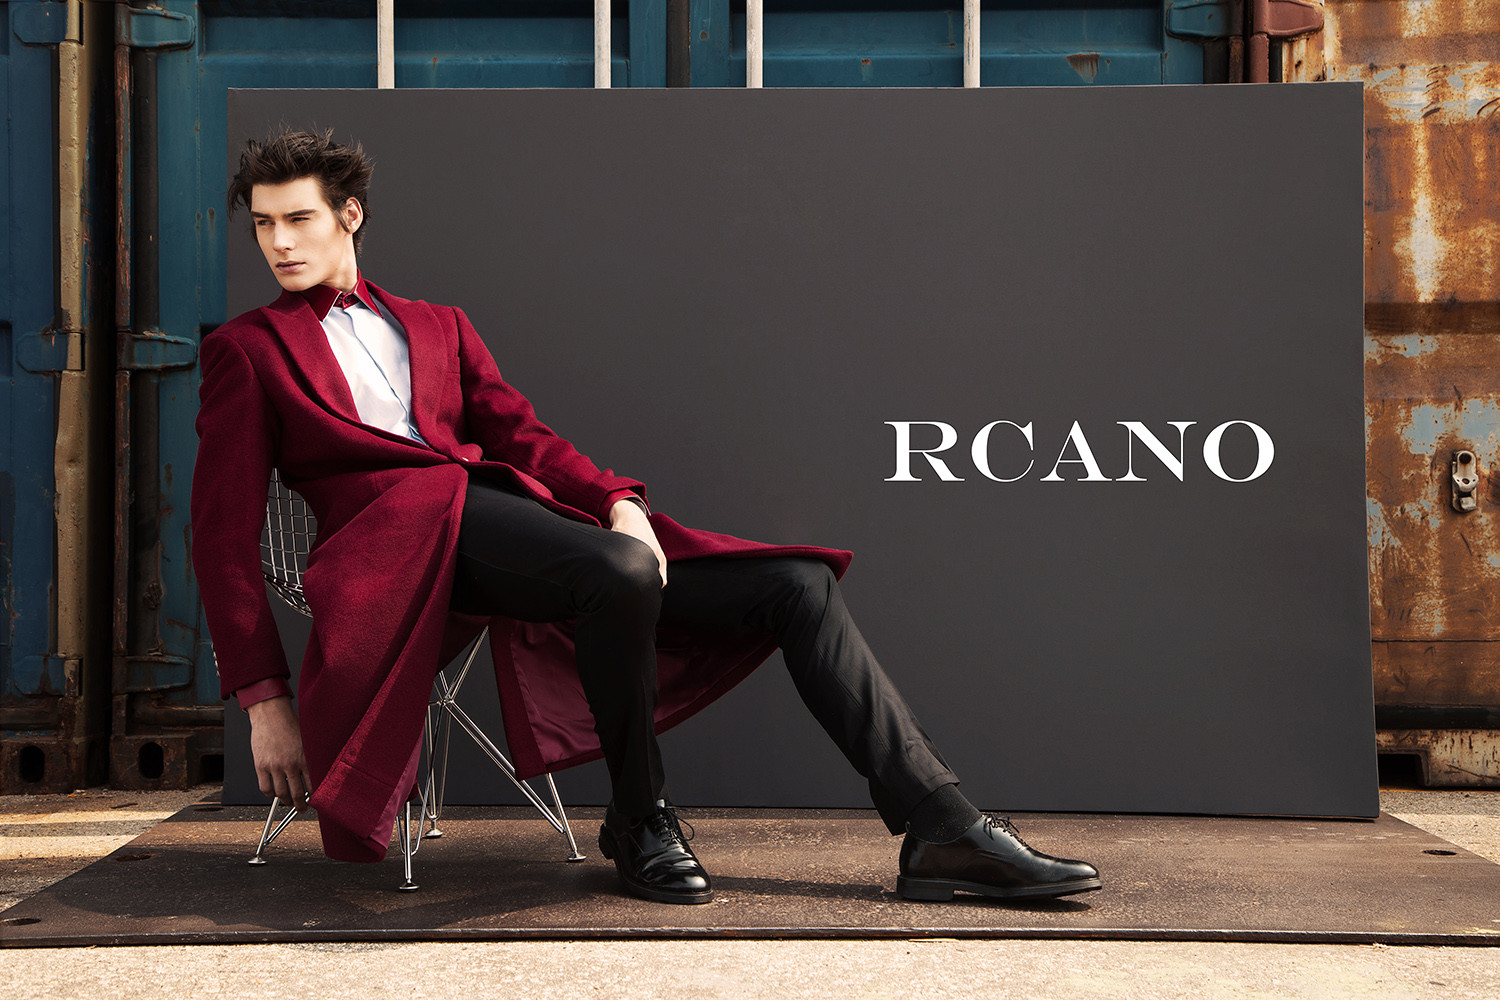 RCANO FW15-2 HIGH RES LOGO.jpg